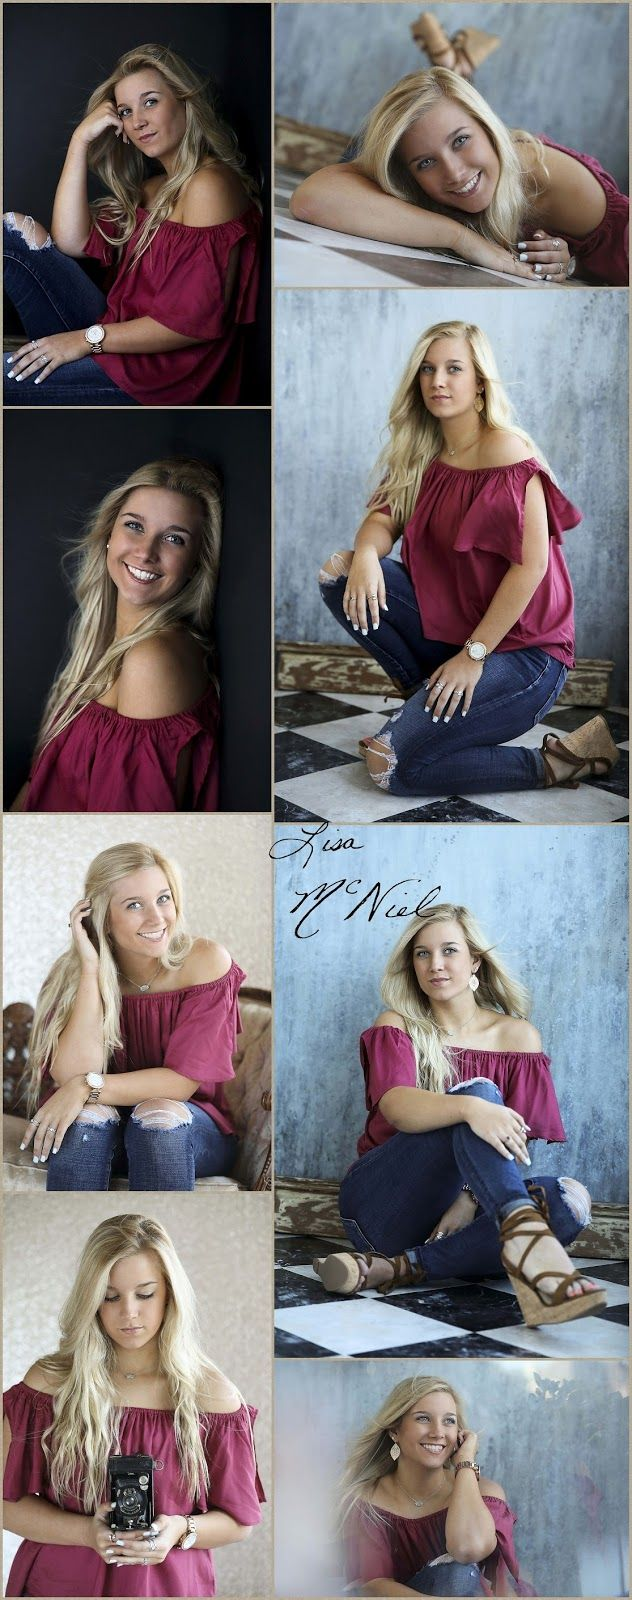 Dallas Portraits with Hebron High School Senior Pictures by Dallas Fort Worth Photographer Lisa McNiel, sunny, blond, happy, inside, outside, lake, forrest, ideas, creative, what to wear, clothes softball, click the pic for more